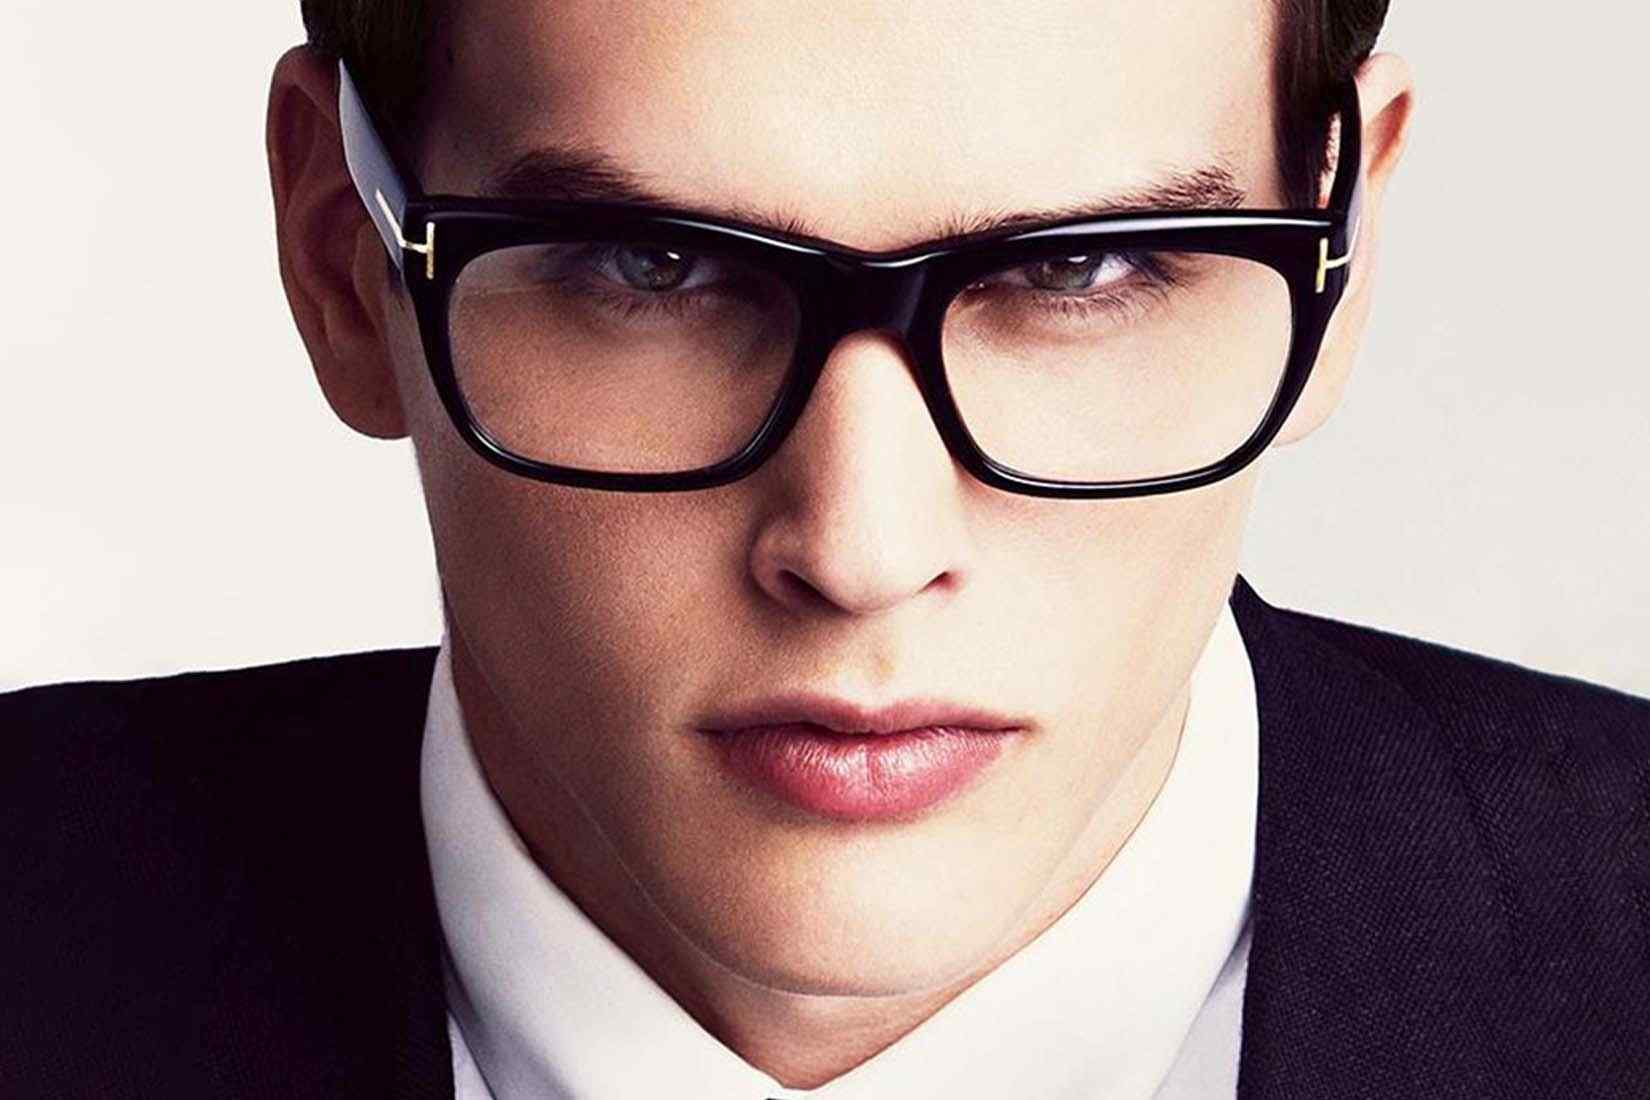 Tom Ford Spectacles 15 1650x1100